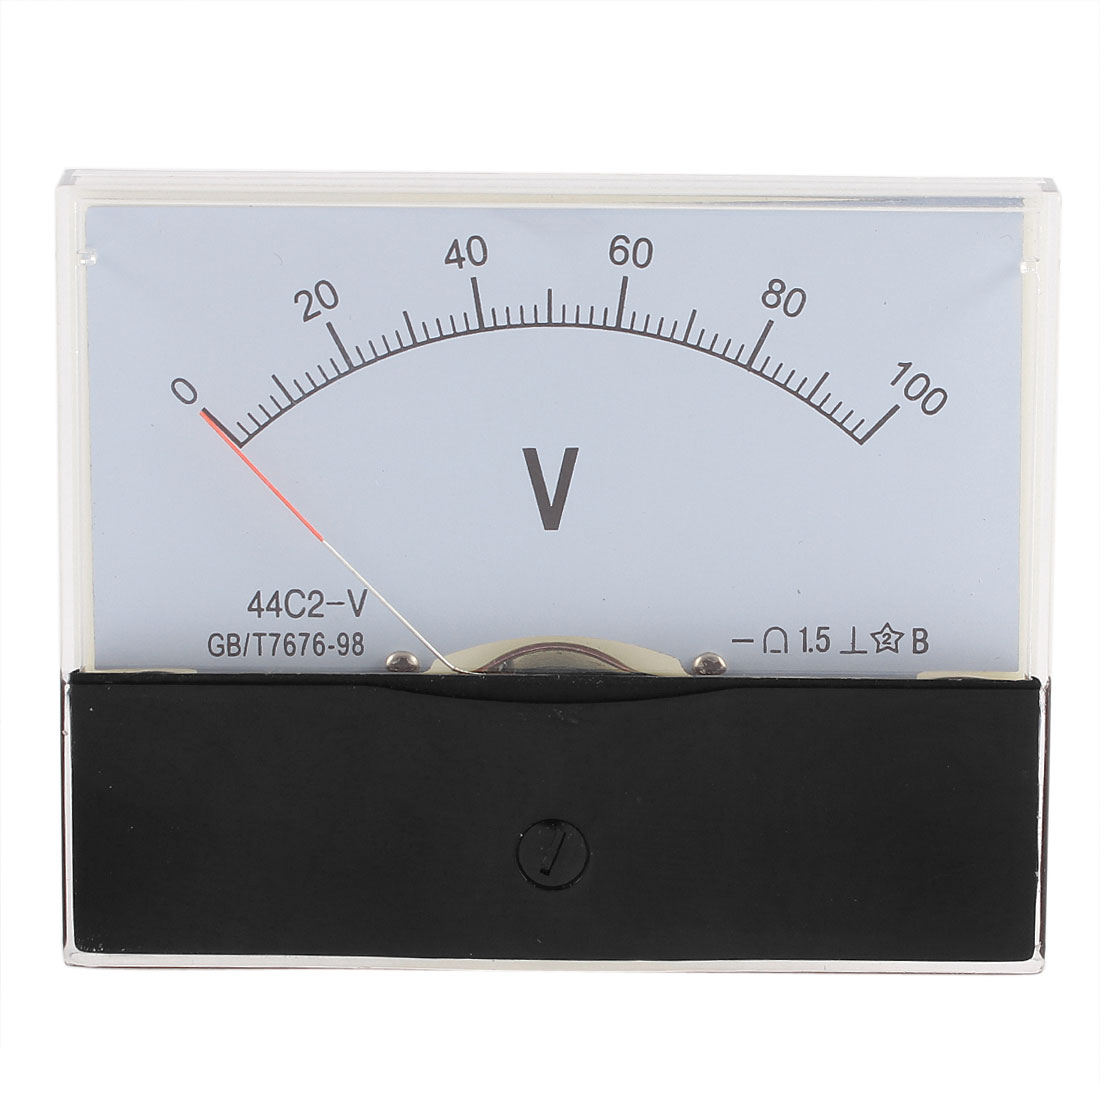 44C2 DC 0-100V Analog Panel Voltmeter Voltage Meter Measuring Gauge Class 1.5